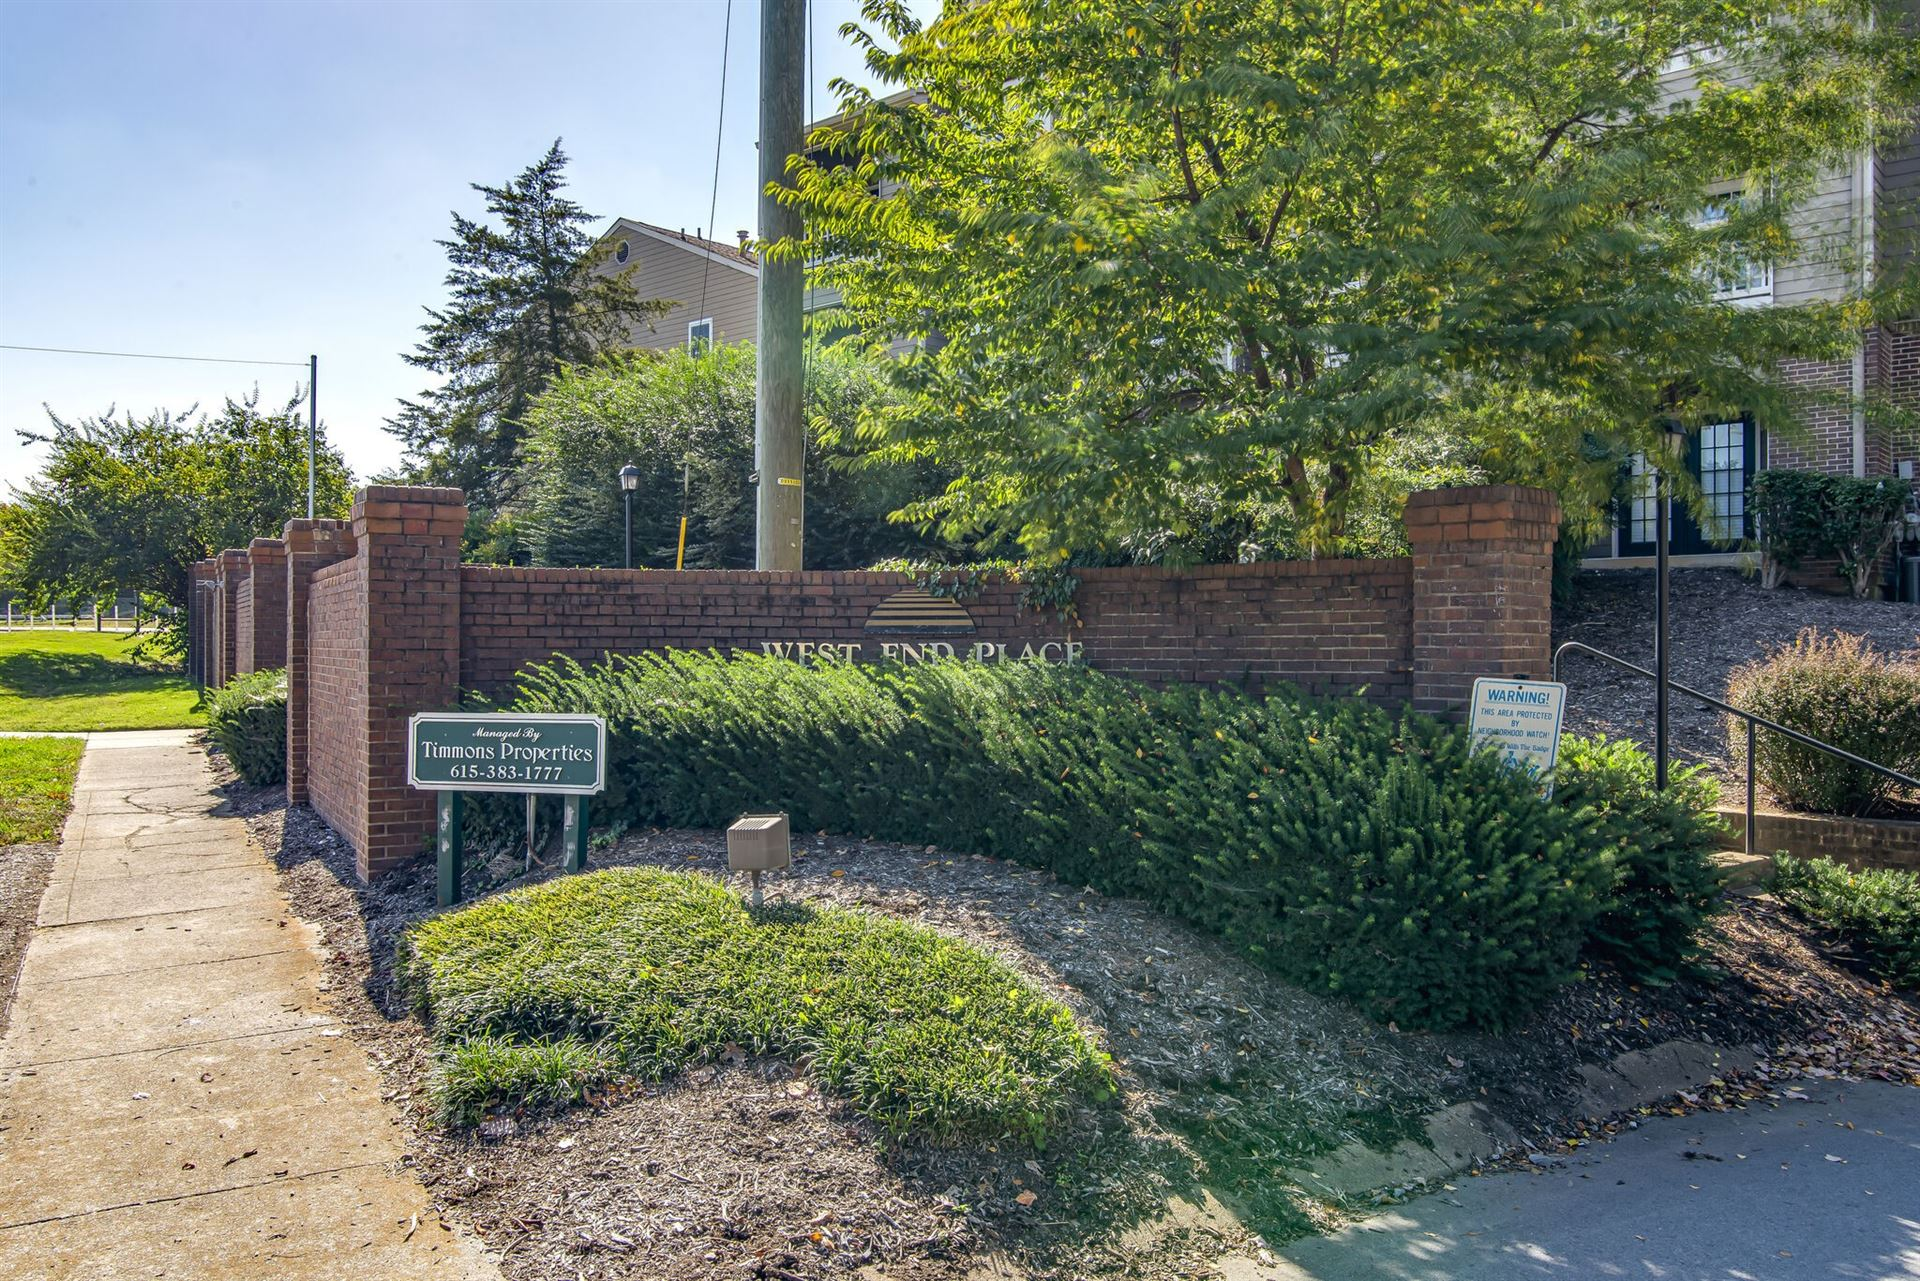 103 W End Pl #103, Nashville, TN 37205 - MLS#: 2201575